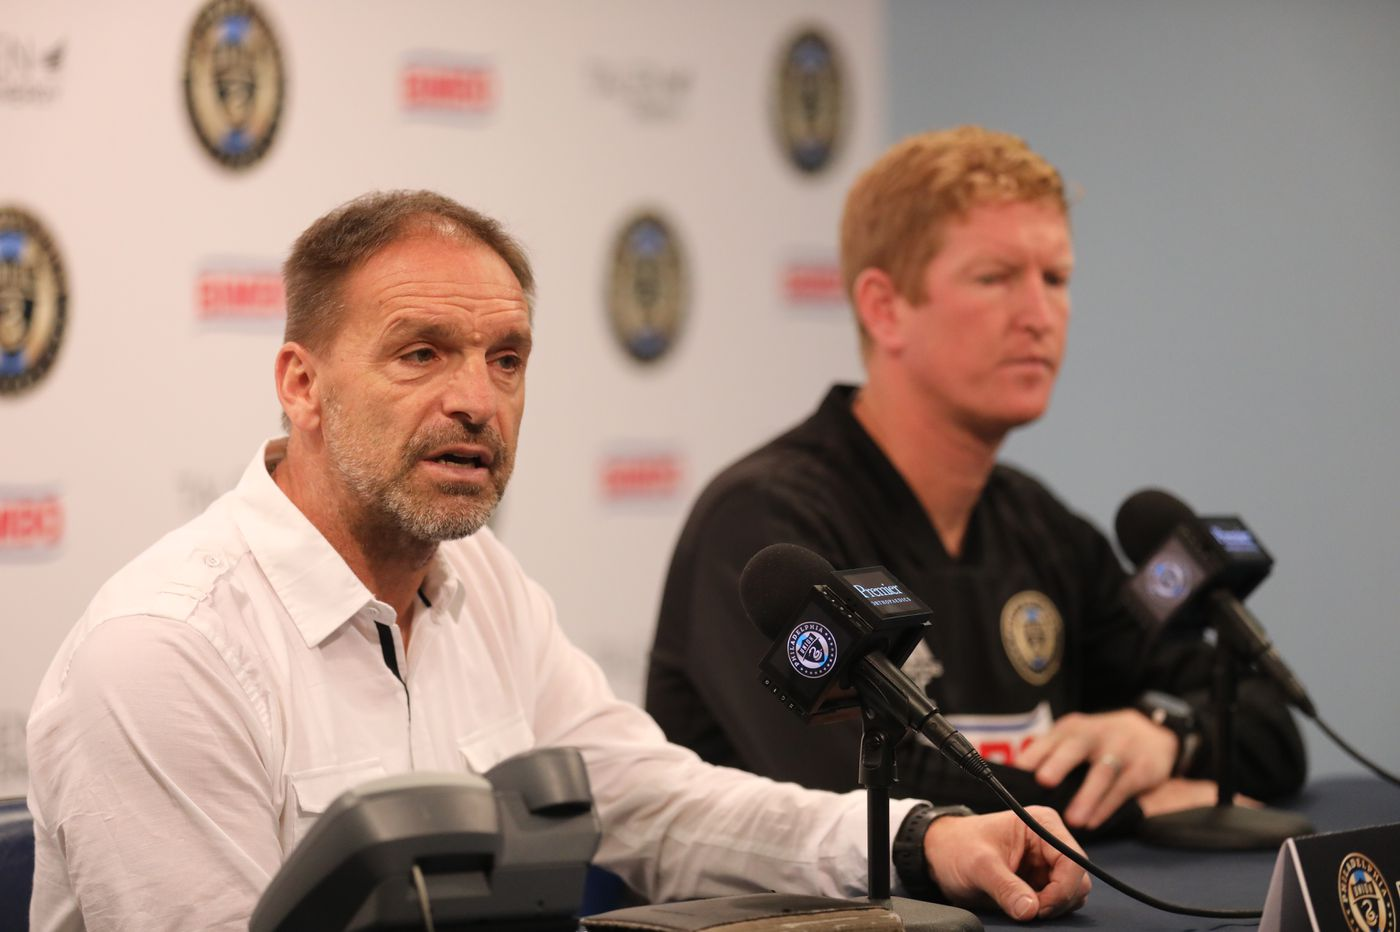 Ernst Tanner promises big changes to the Union's playing style. Here's what they might look like.